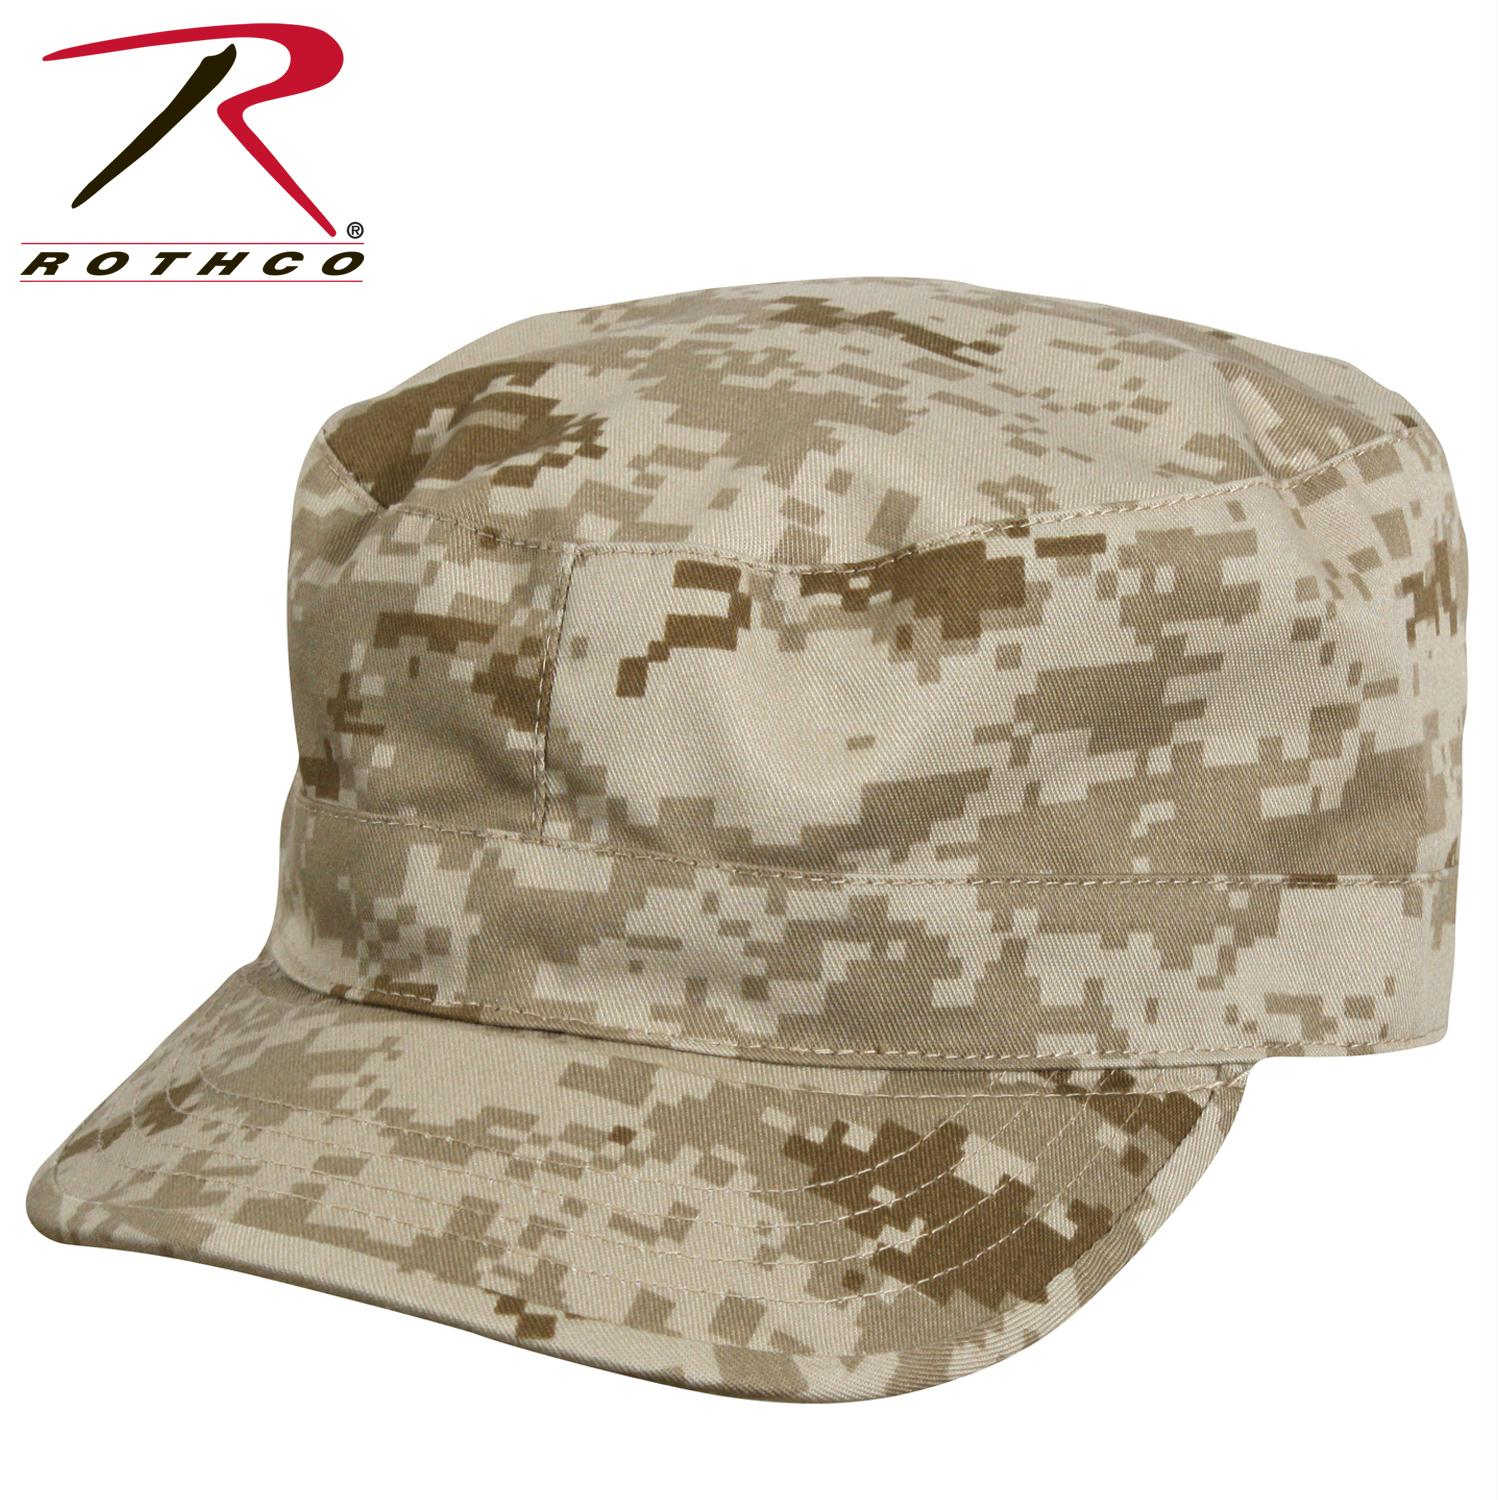 Rothco Camo Fatigue Caps - Desert Digital Camo / XL